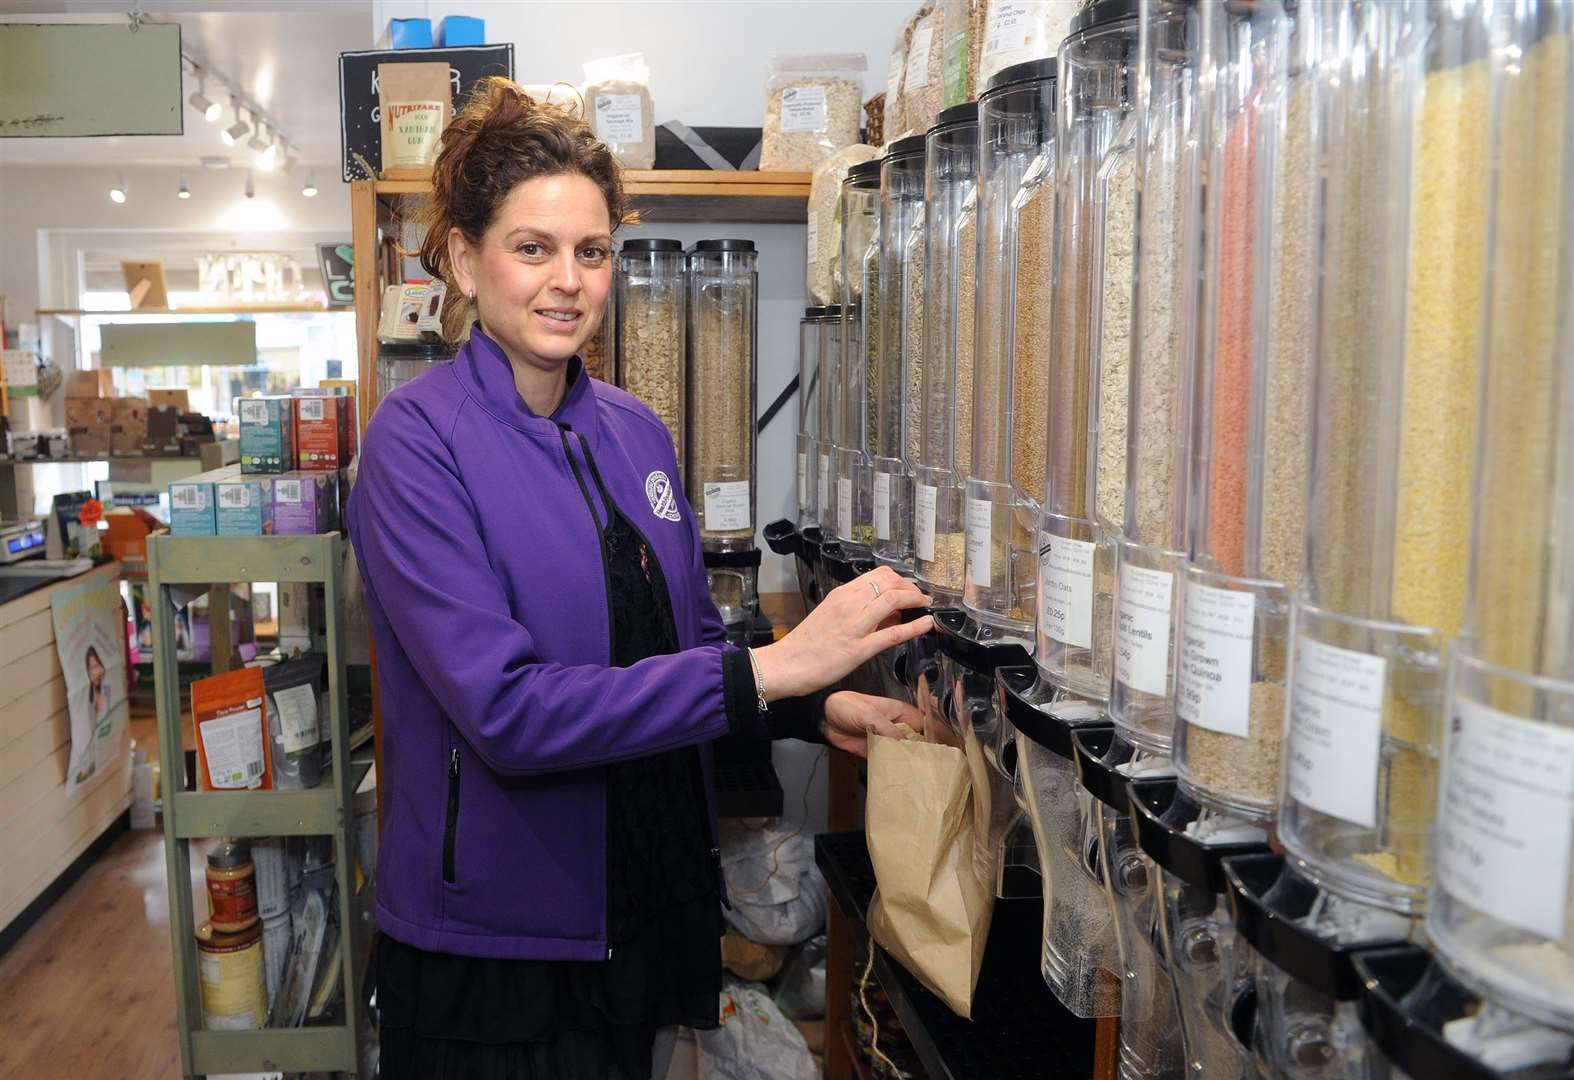 Zero waste initiative takes off at Health Foods For You shop in Sudbury